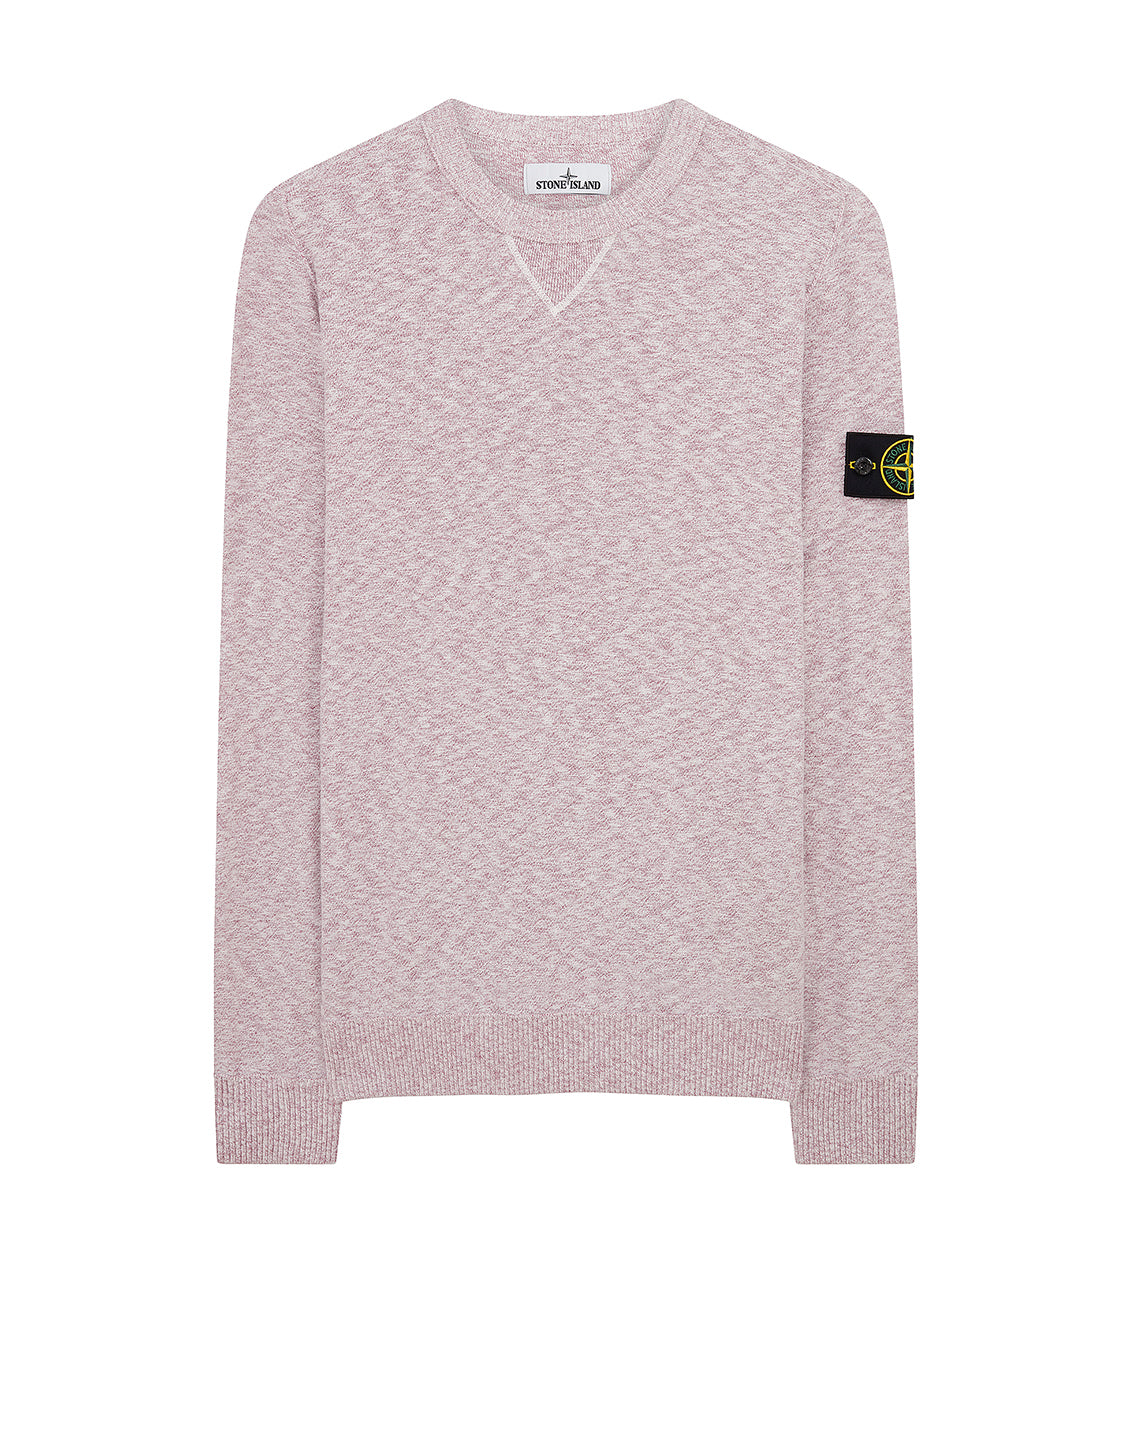 531B0 Knitwear in Rose Quartz